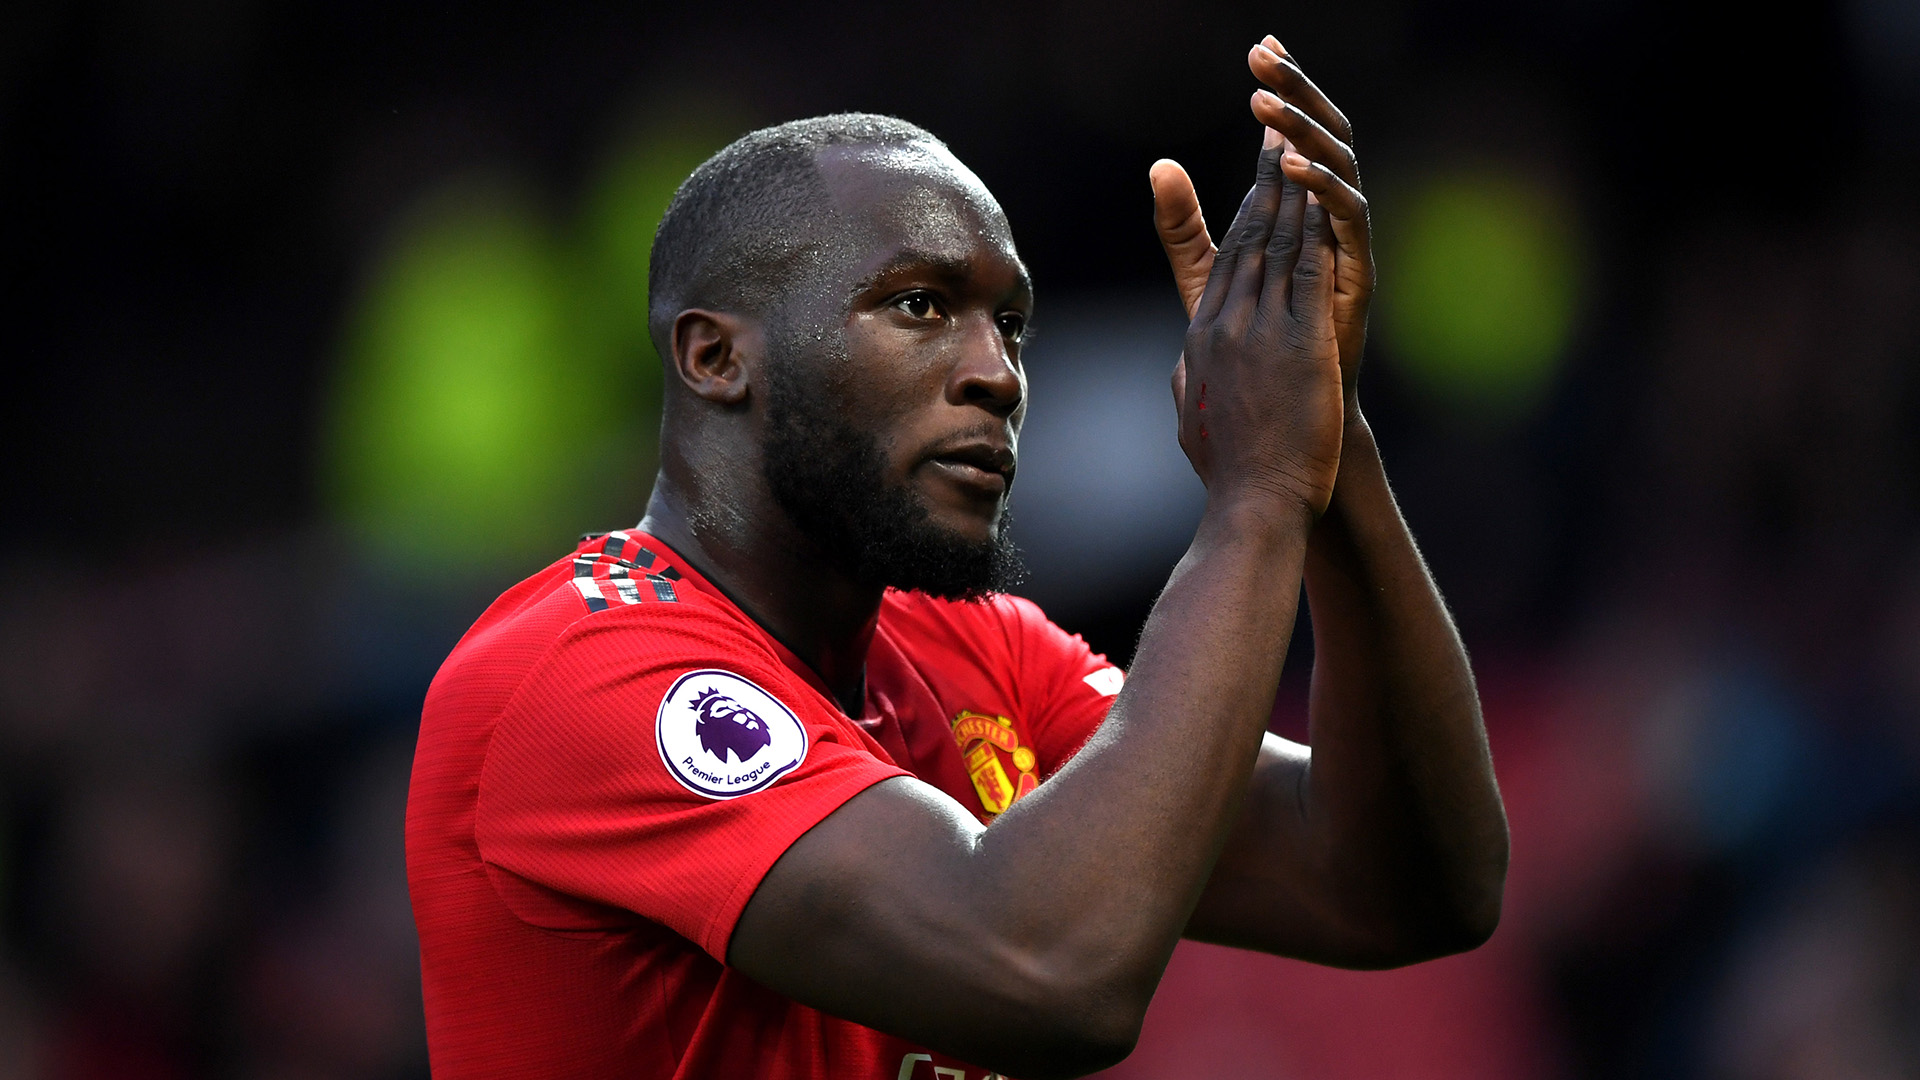 'You know very well I like this player' - Conte confirms admiration for Lukaku amid Inter transfer links